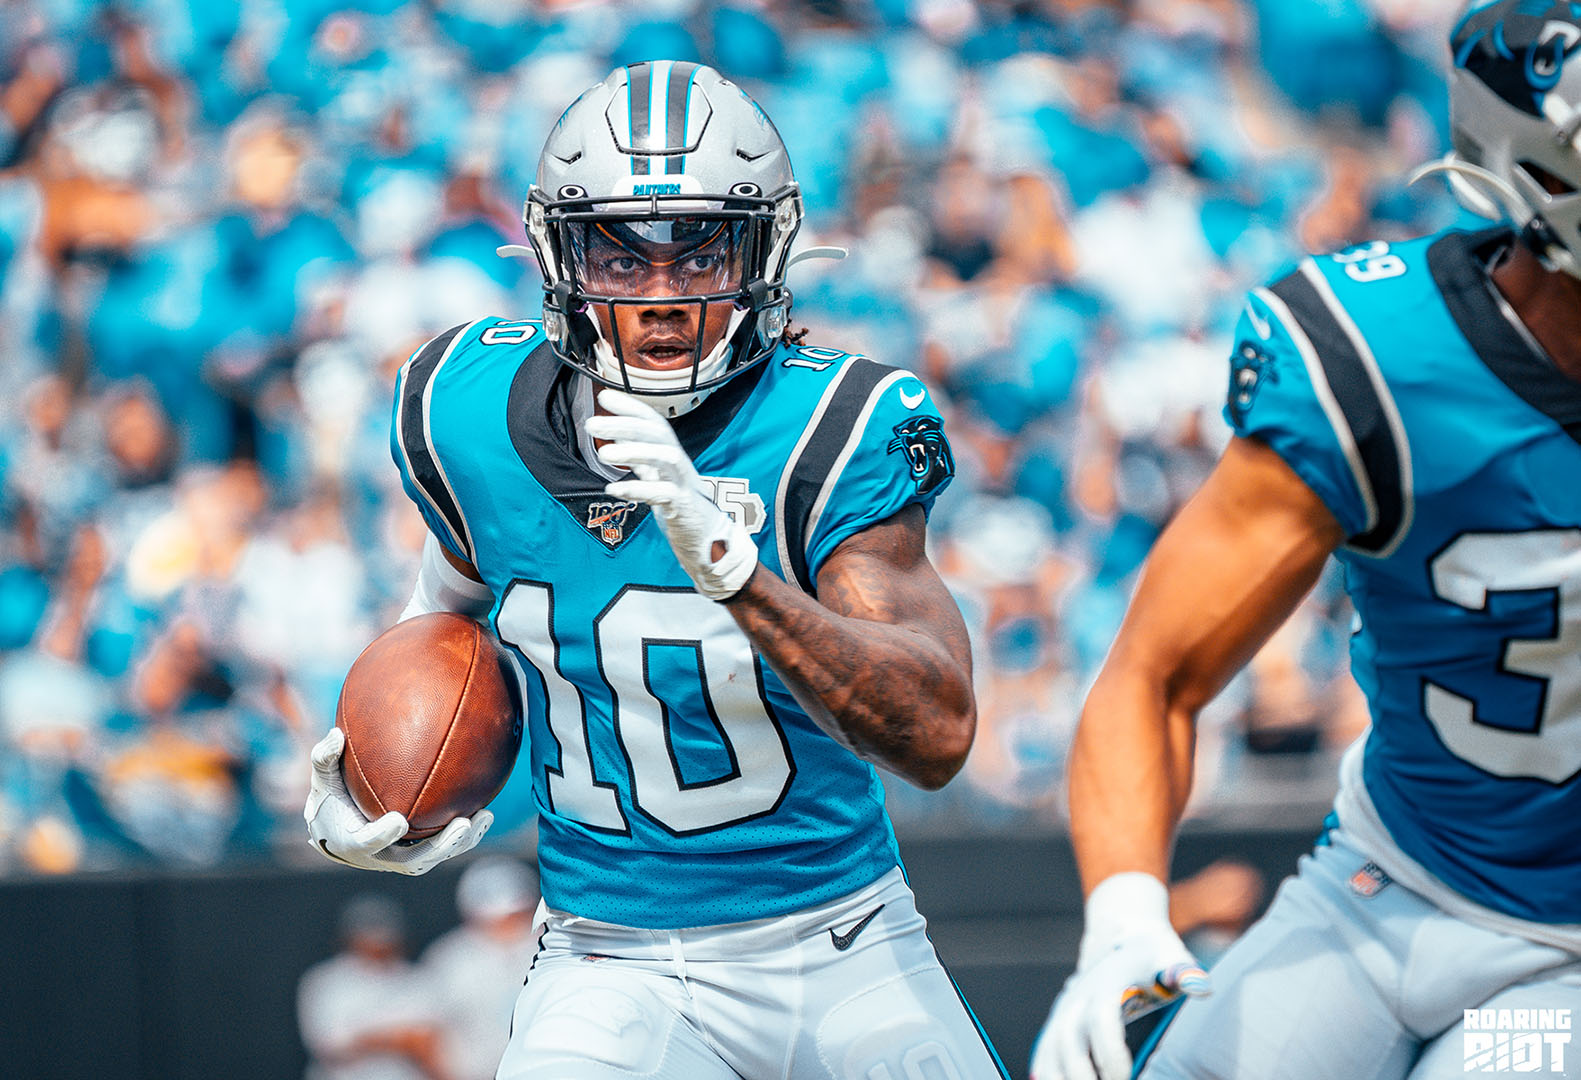 Panthers Picks & Props: Going Back to the Well on Curtis Samuel